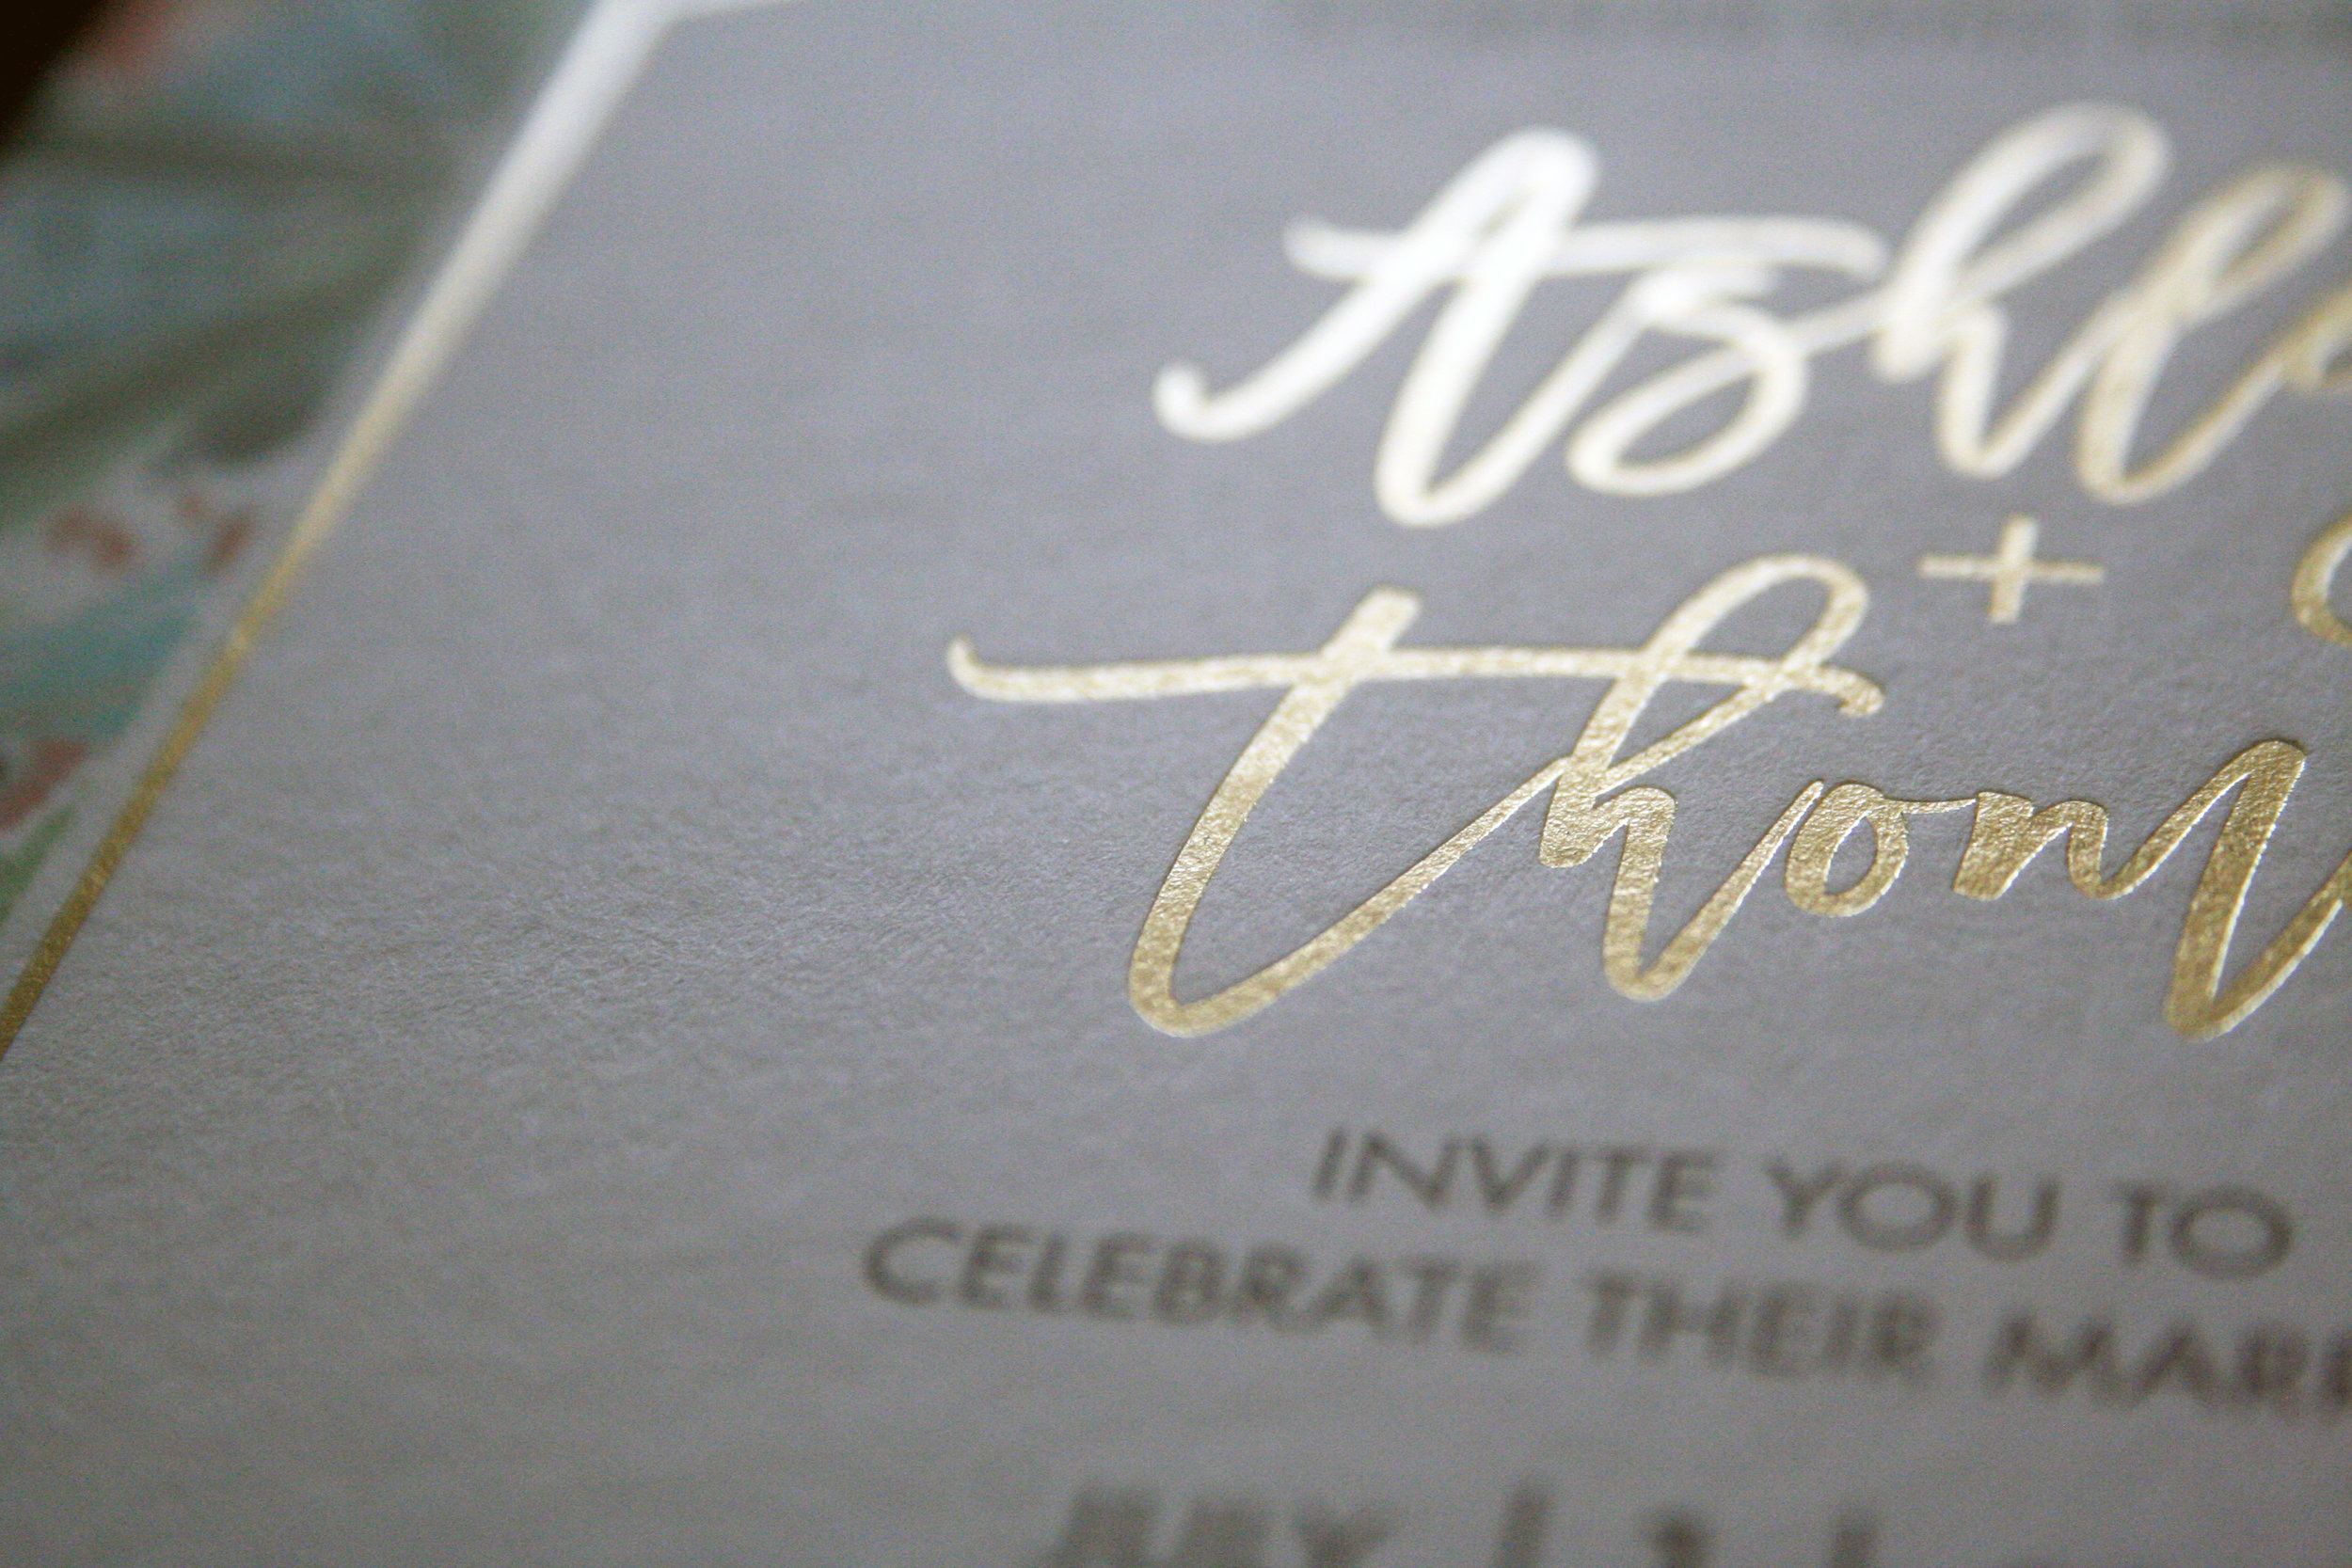 Eggshell paper with Gold Foil